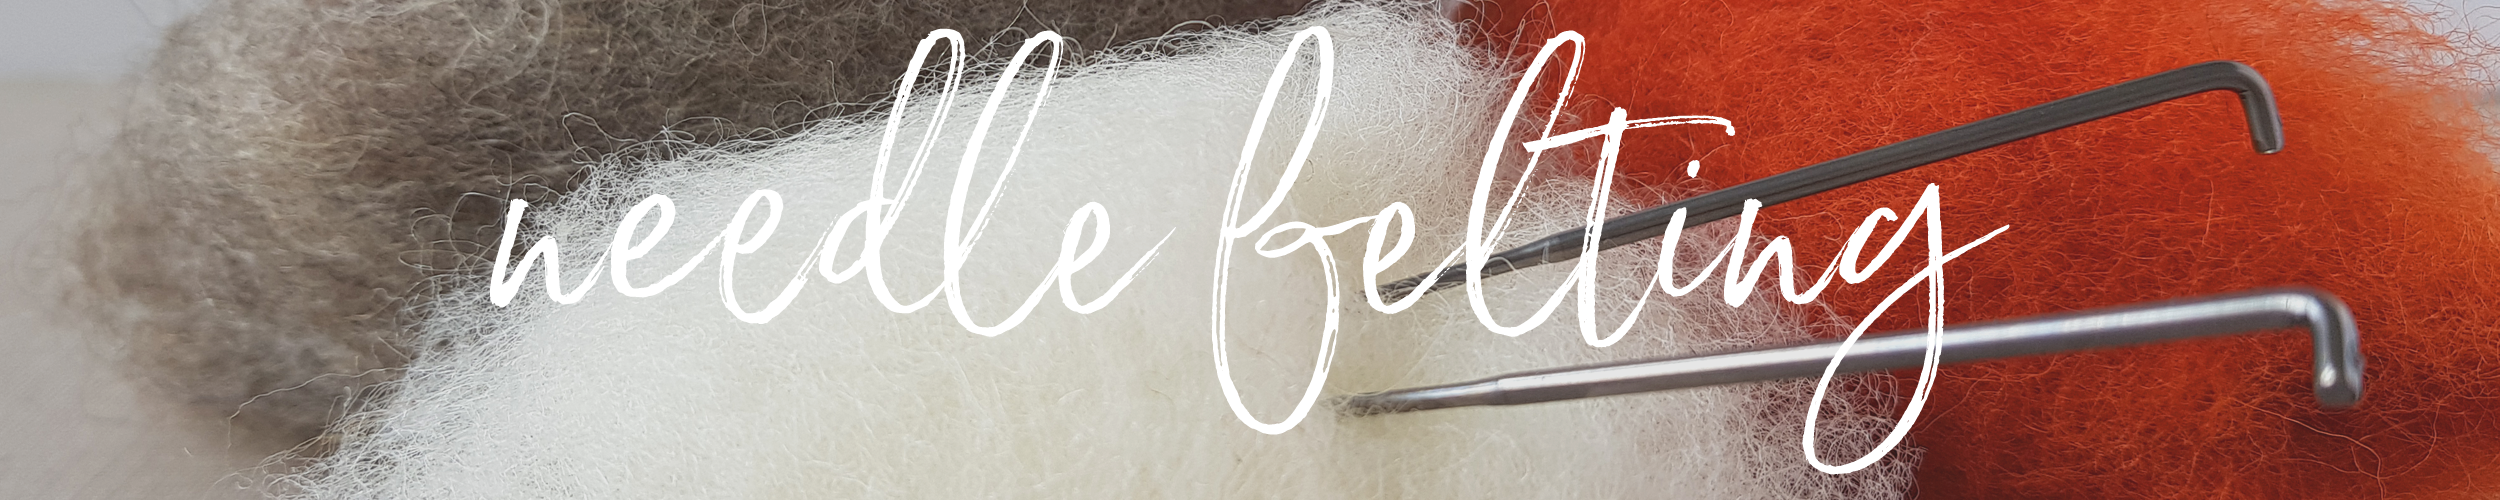 needle felting banner.png